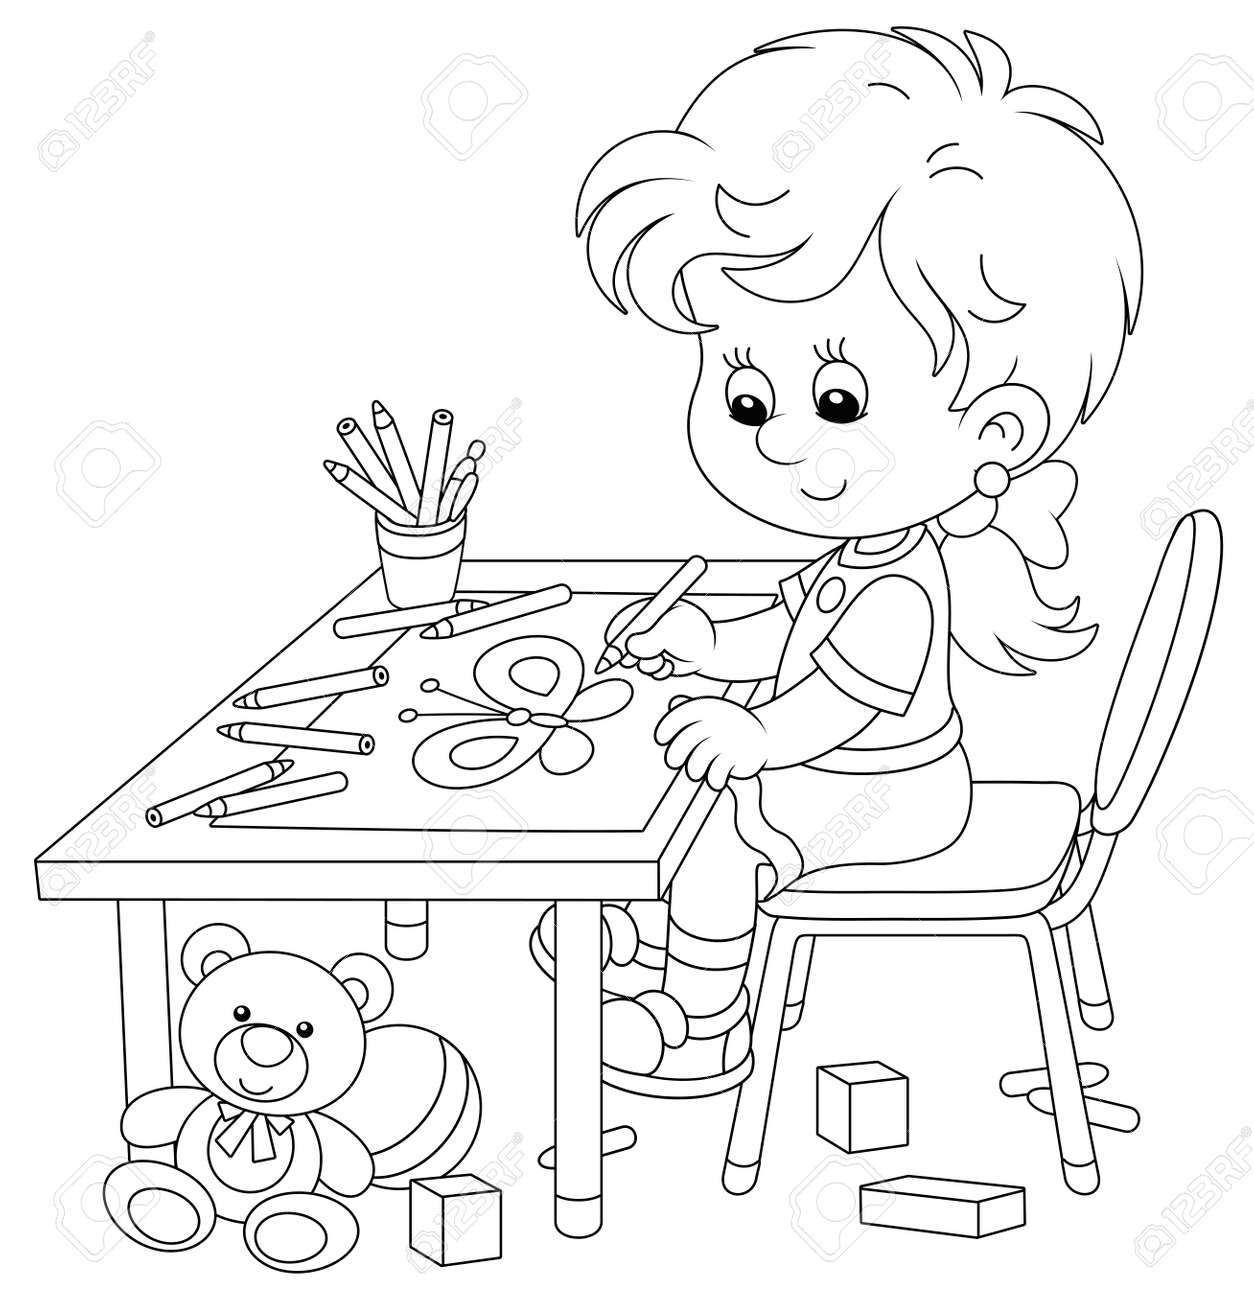 Smiling little girl sitting at her table and drawing with pencils a funny picture of a small beautiful butterfly, black and white outline vector cartoon illustration for a coloring book page - 145315166